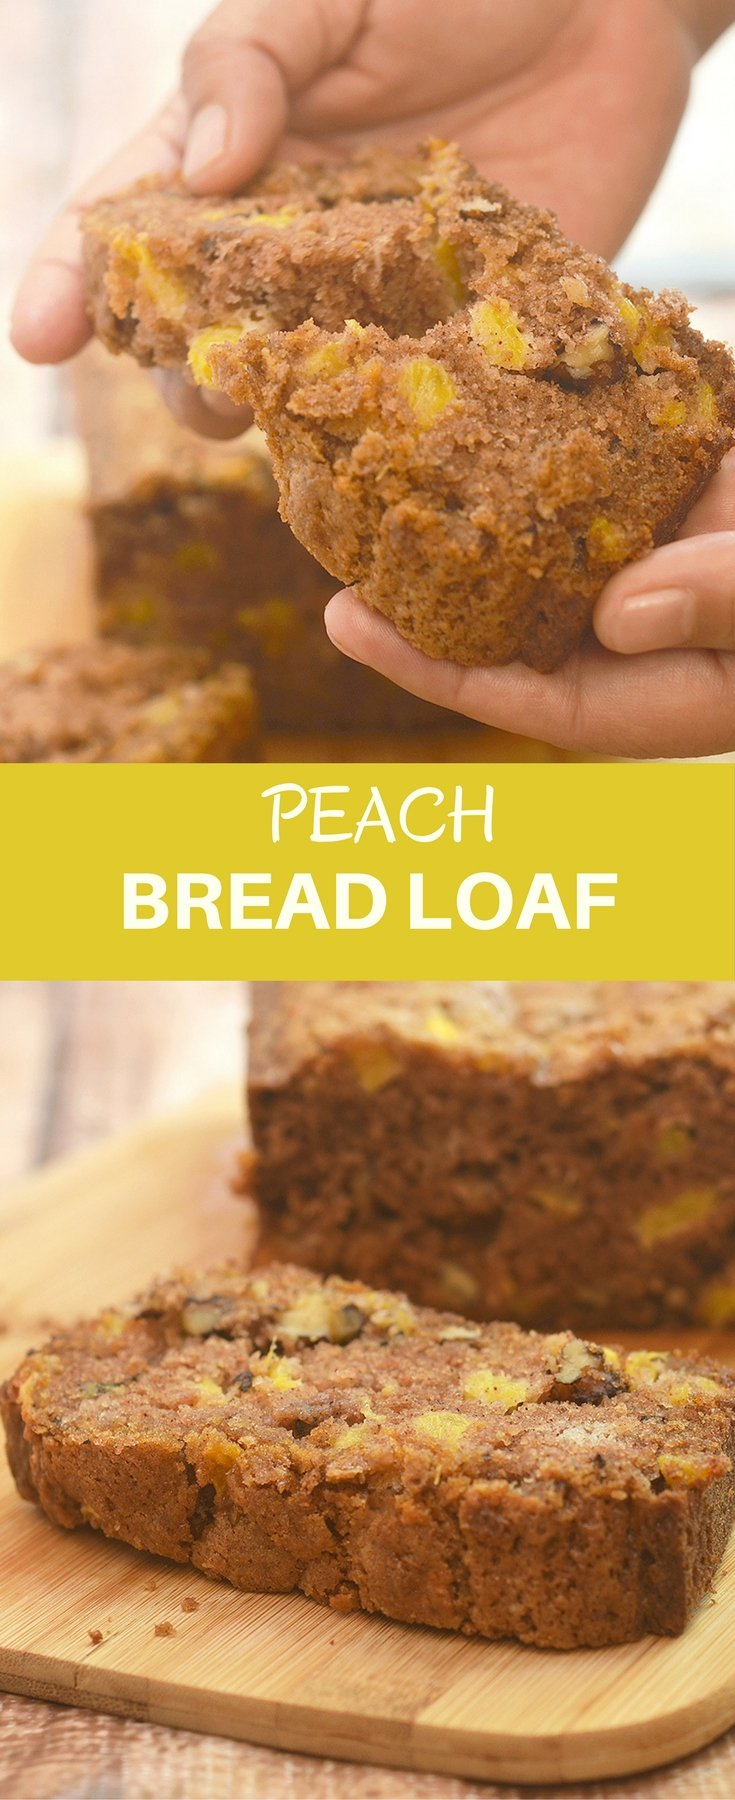 Peach Bread Loaf deliciously studded with fresh peach bits and bursting with warm cinnamon flavors. Super soft and moist, it's amazing for breakfast or anytime snack.